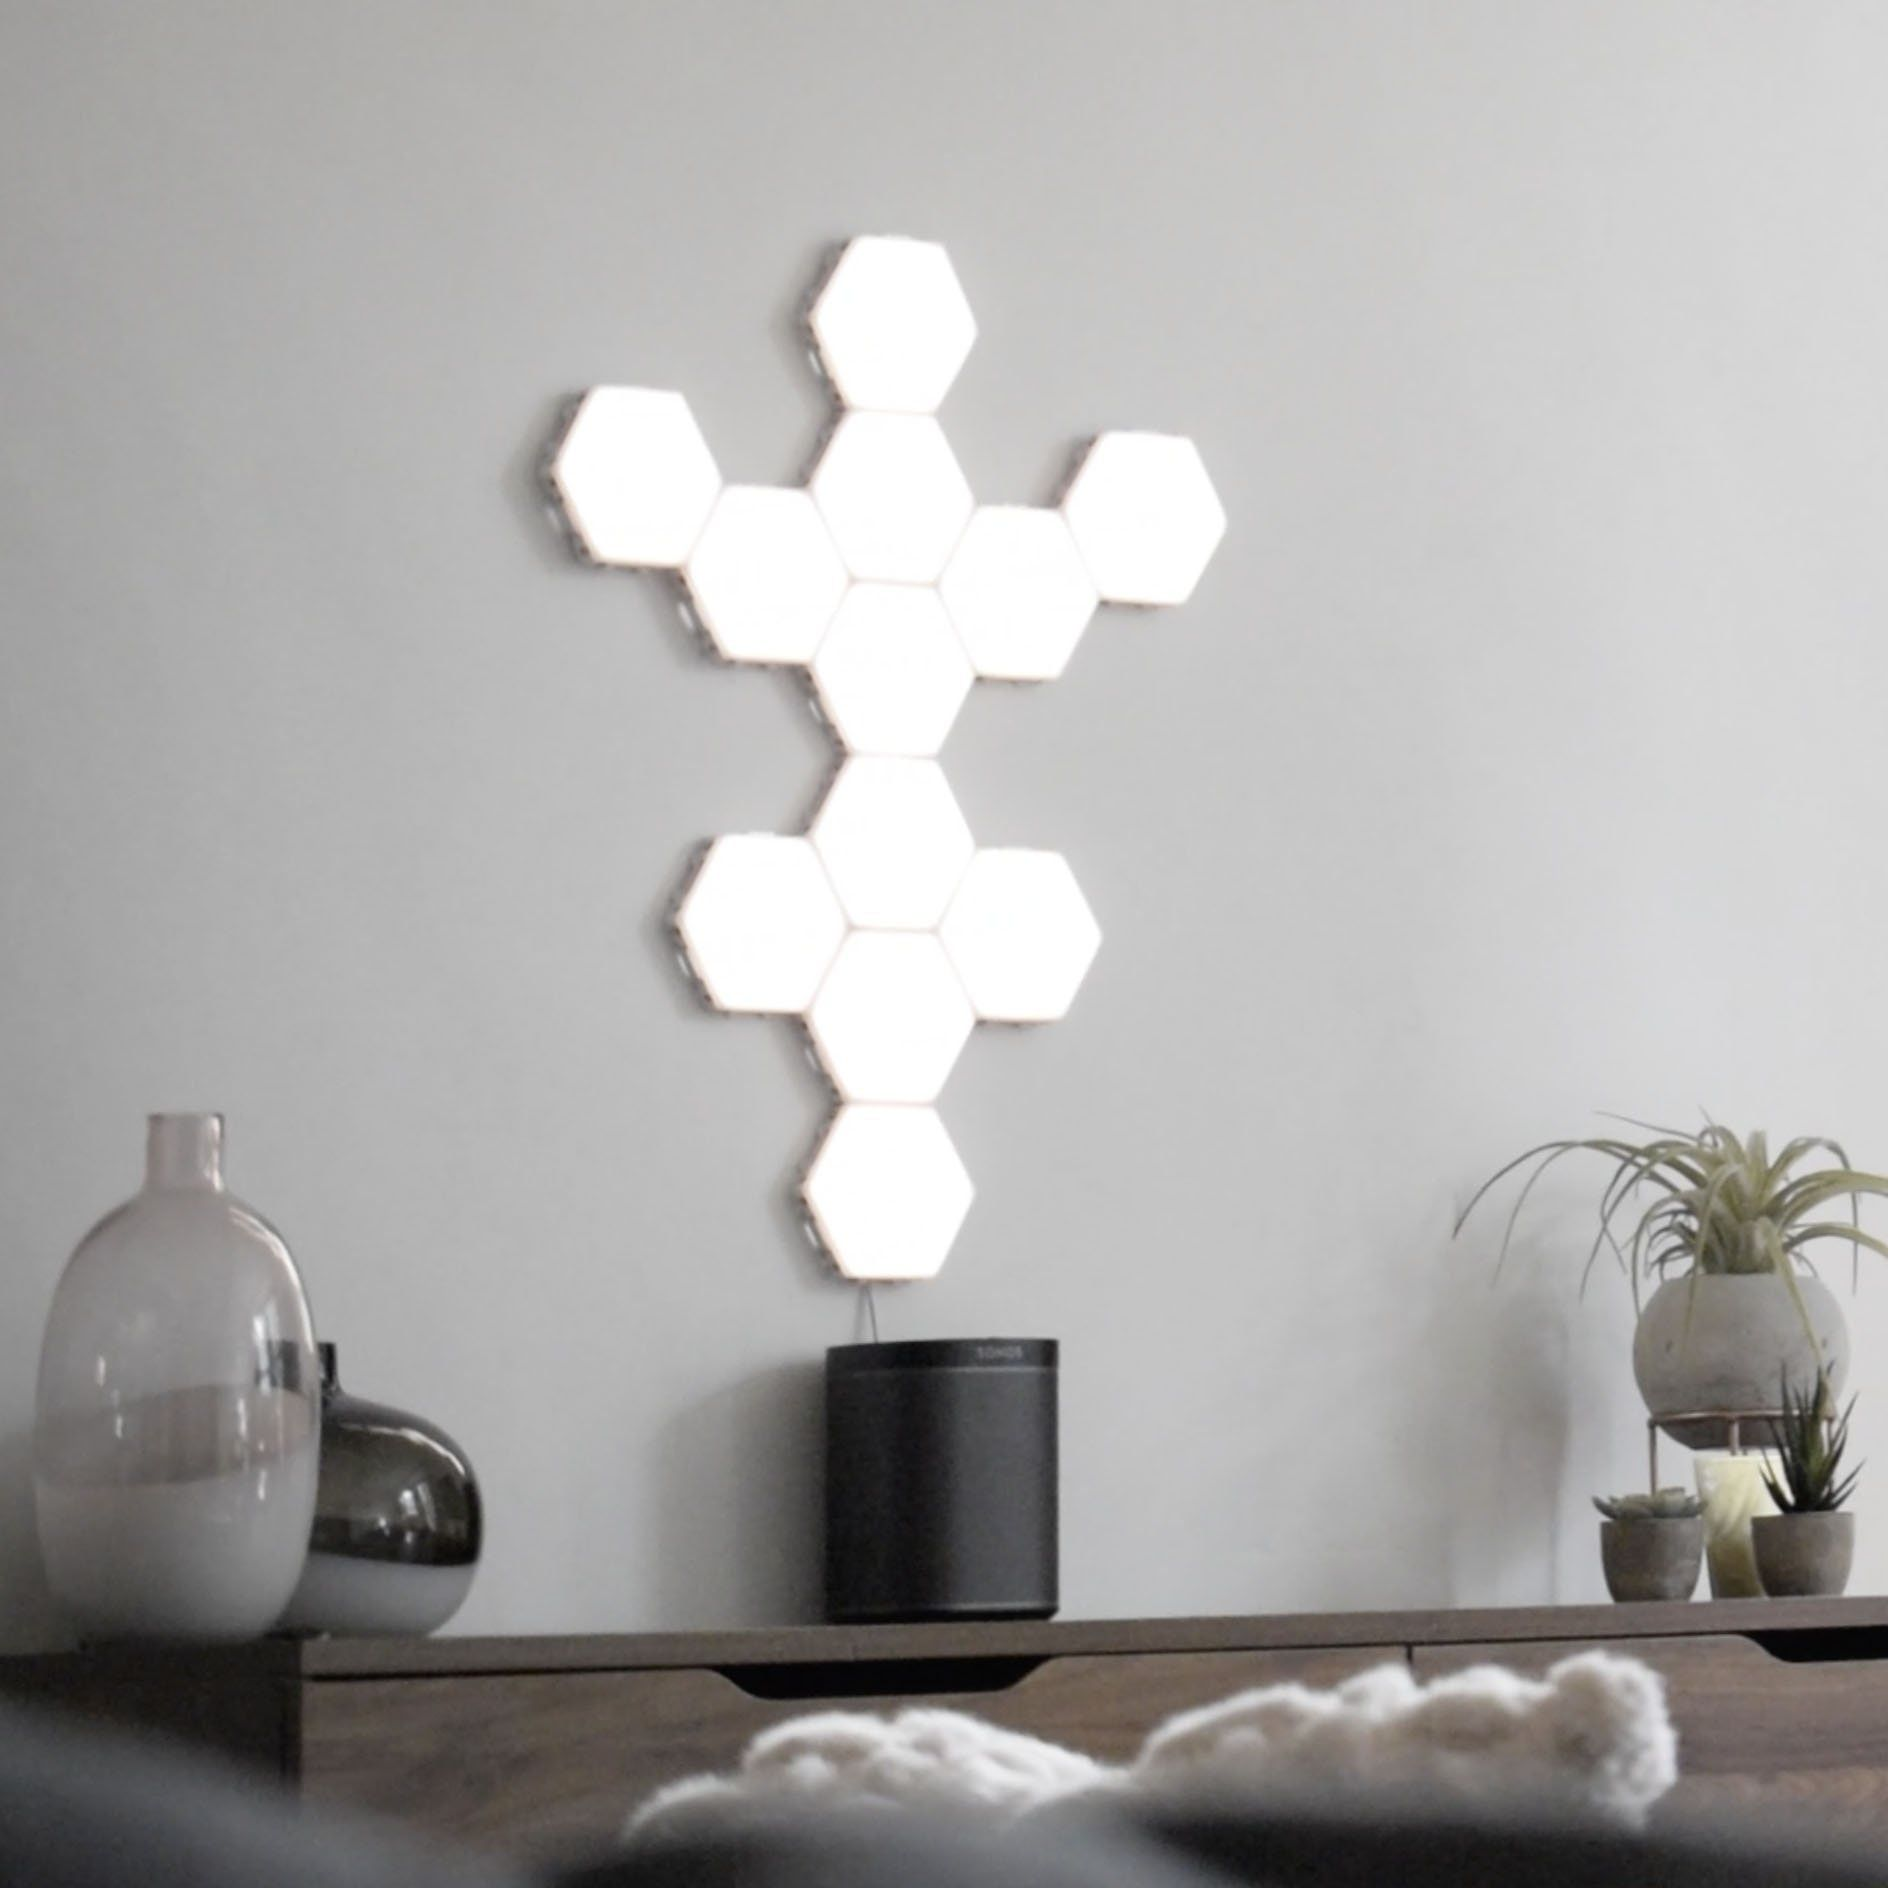 Touch Sensitive Led Lamp With Images Wall Lights Motion